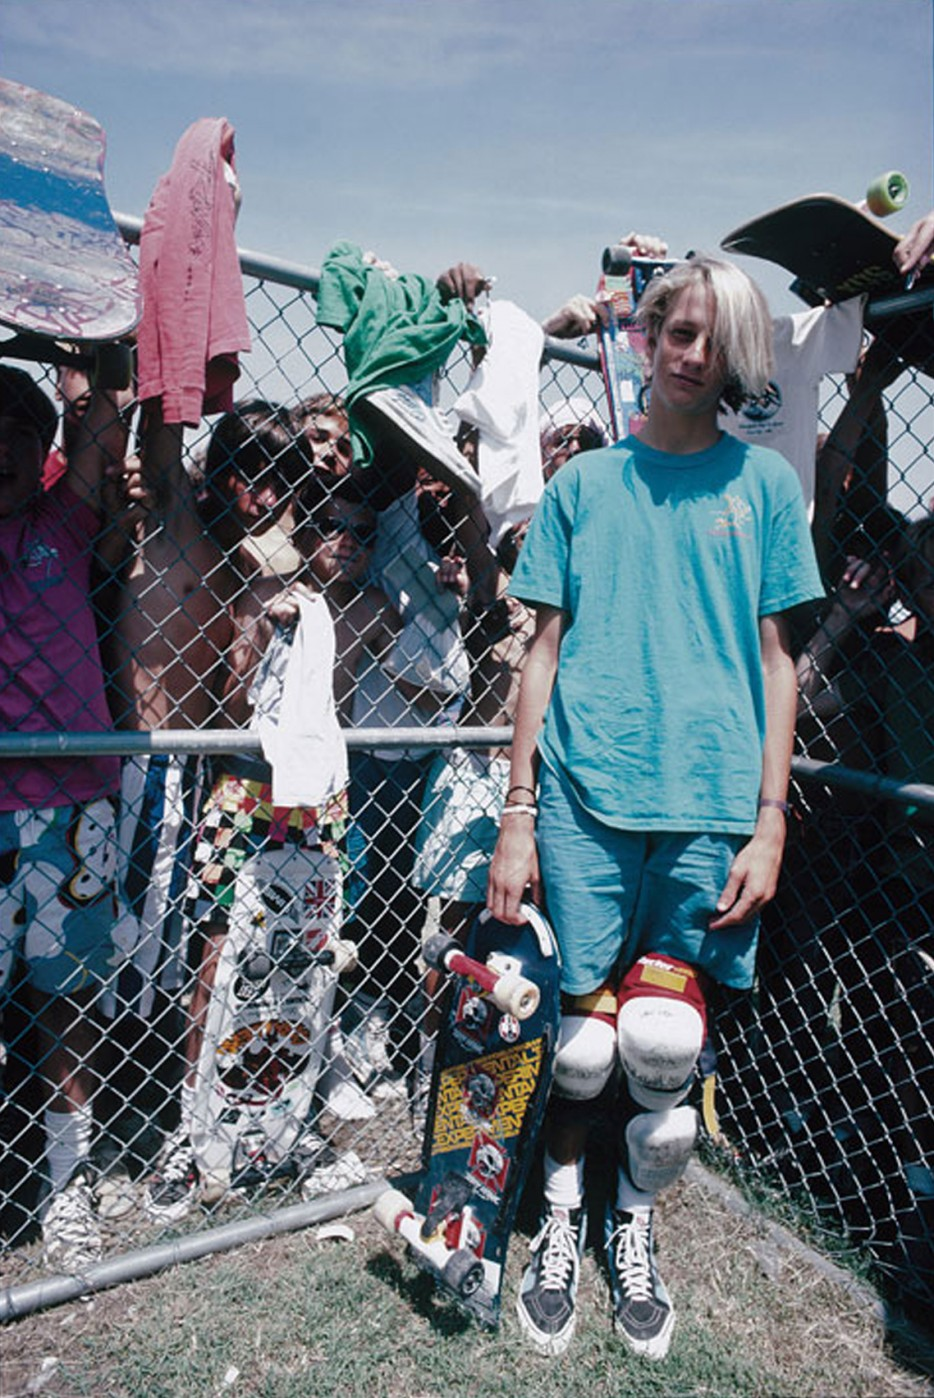 Tony Hawk at a local skate park in the 1980s